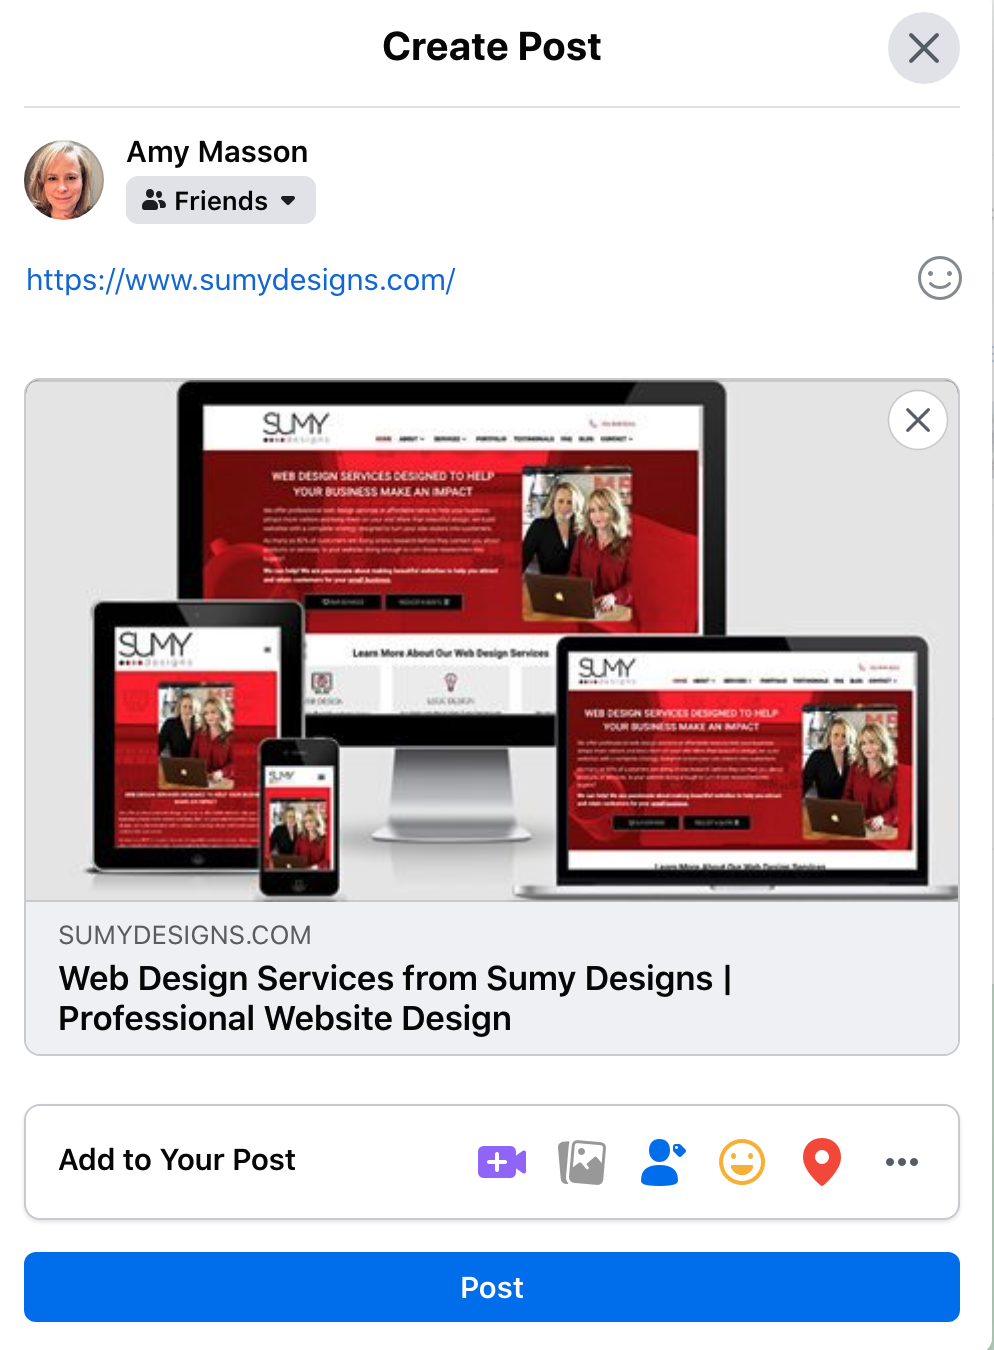 The Sumy Designs website when shared on Facebook.